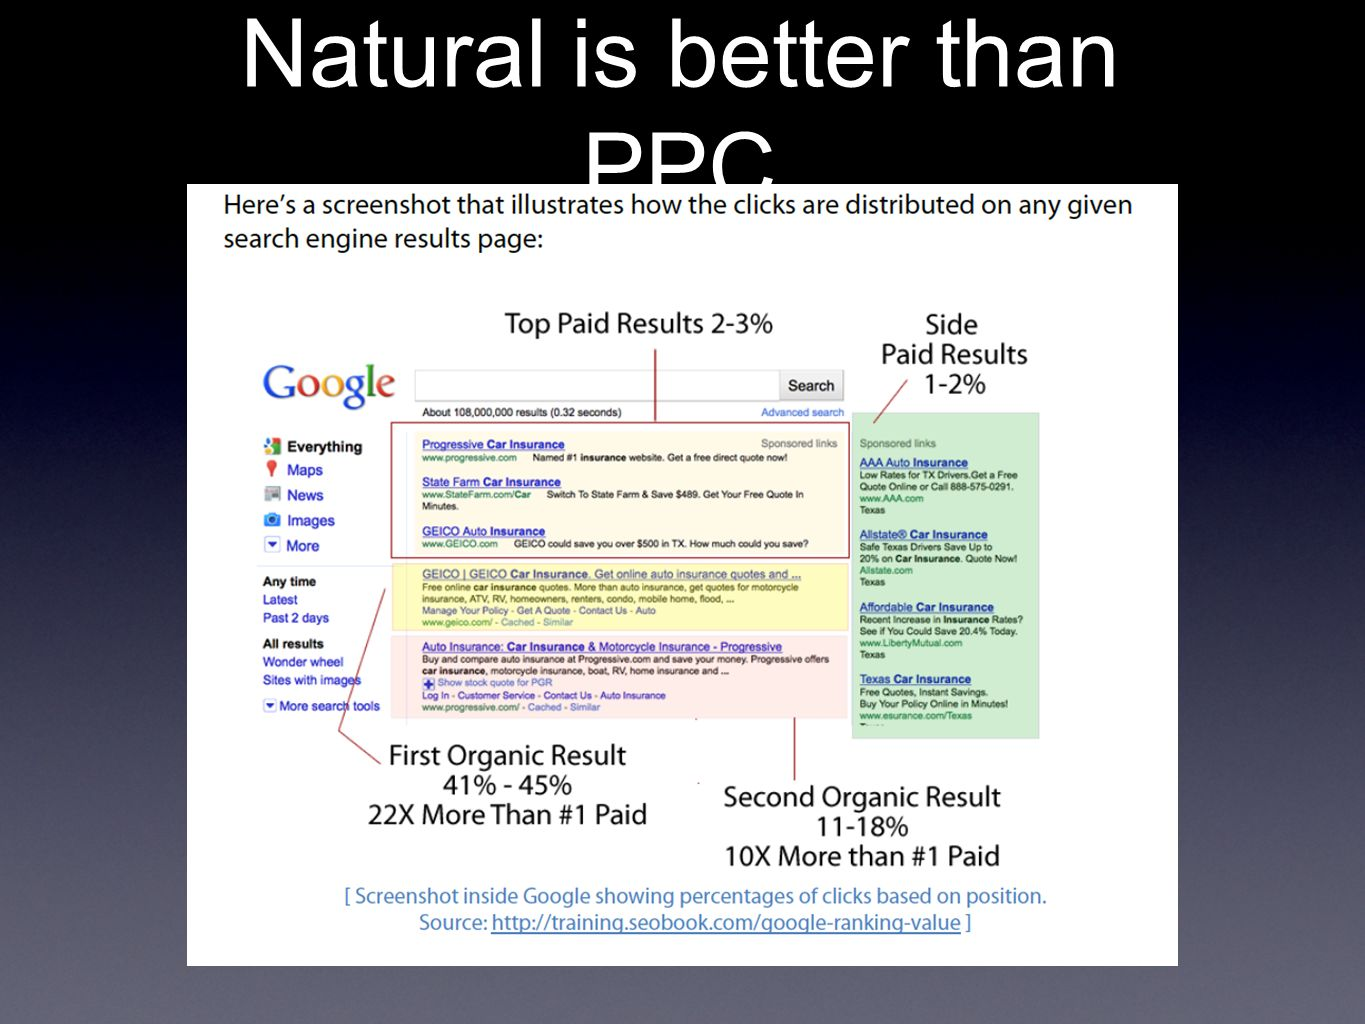 Natural is better than PPC